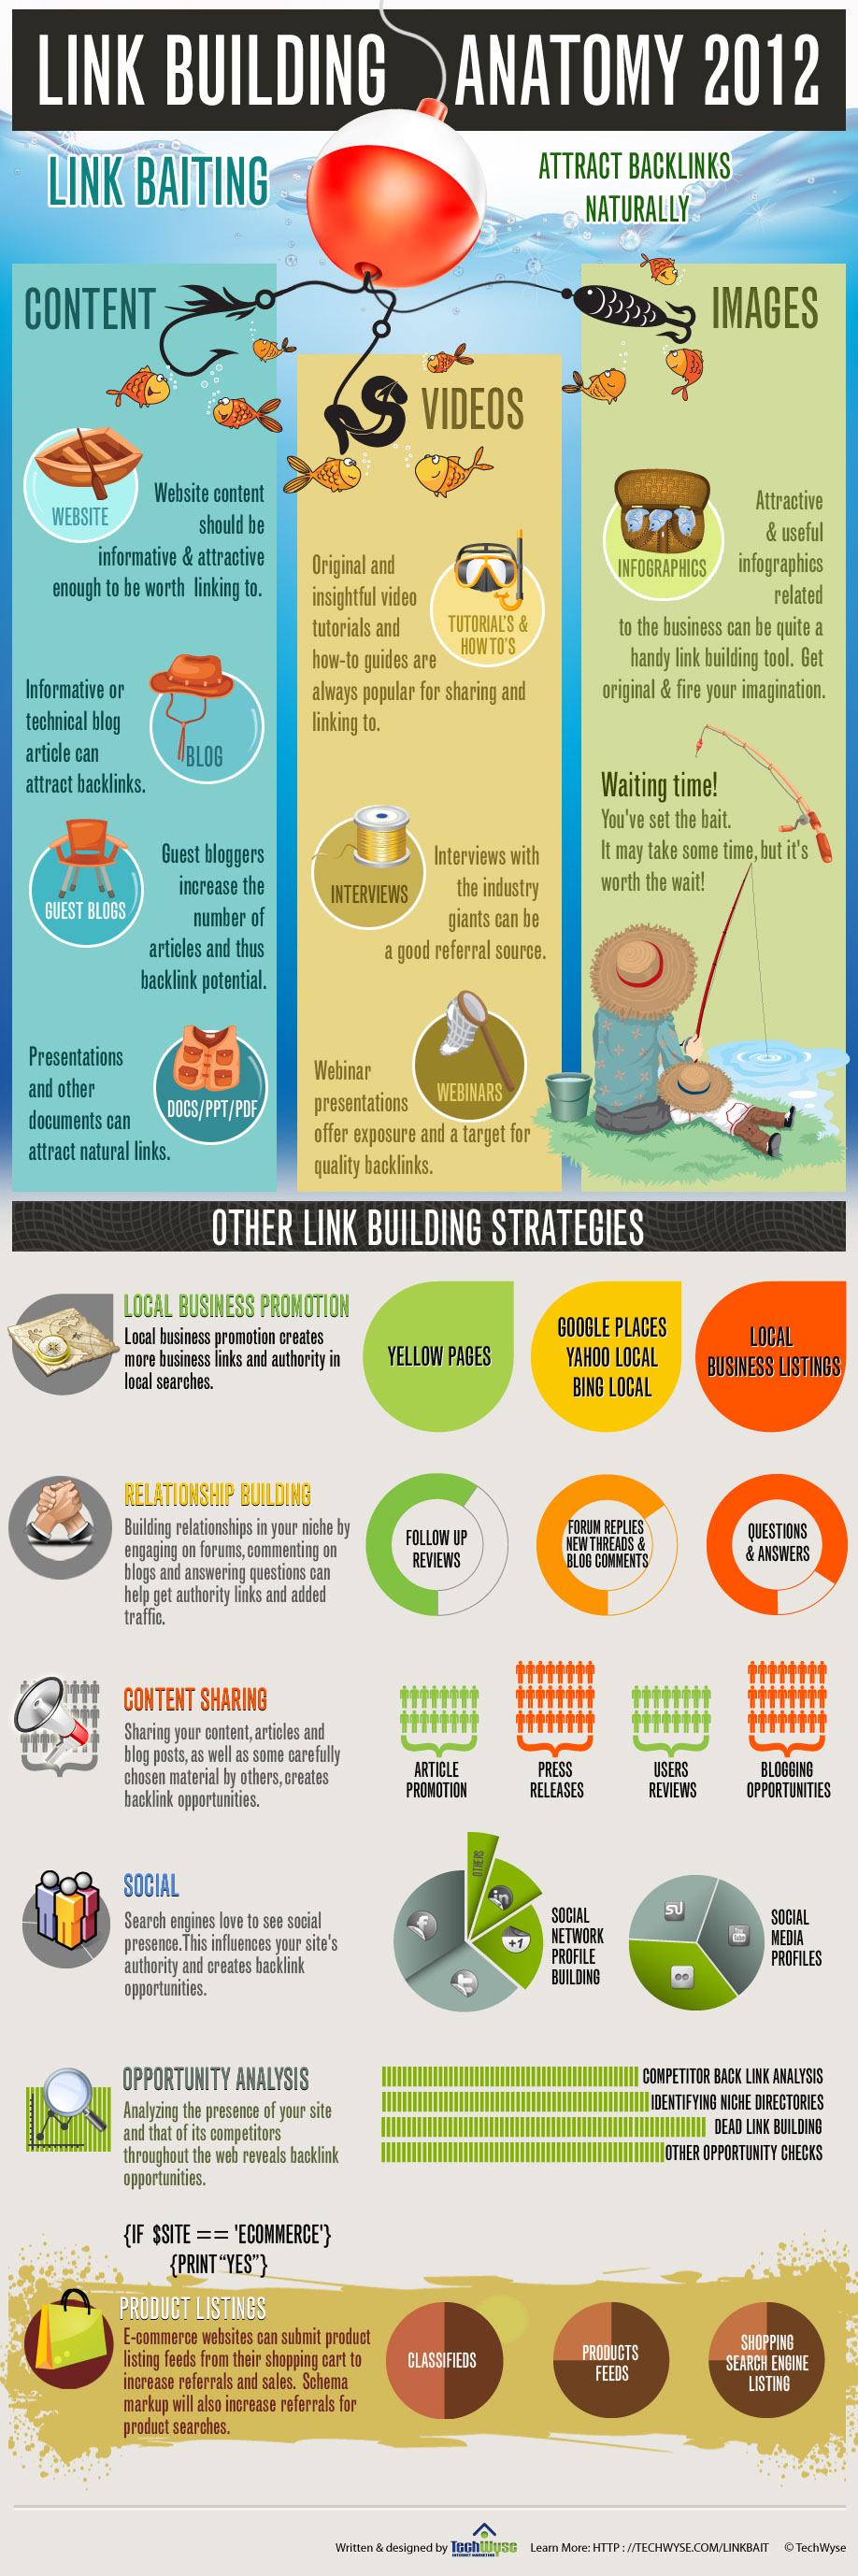 Link-Building-Anatomy-2012-infographic